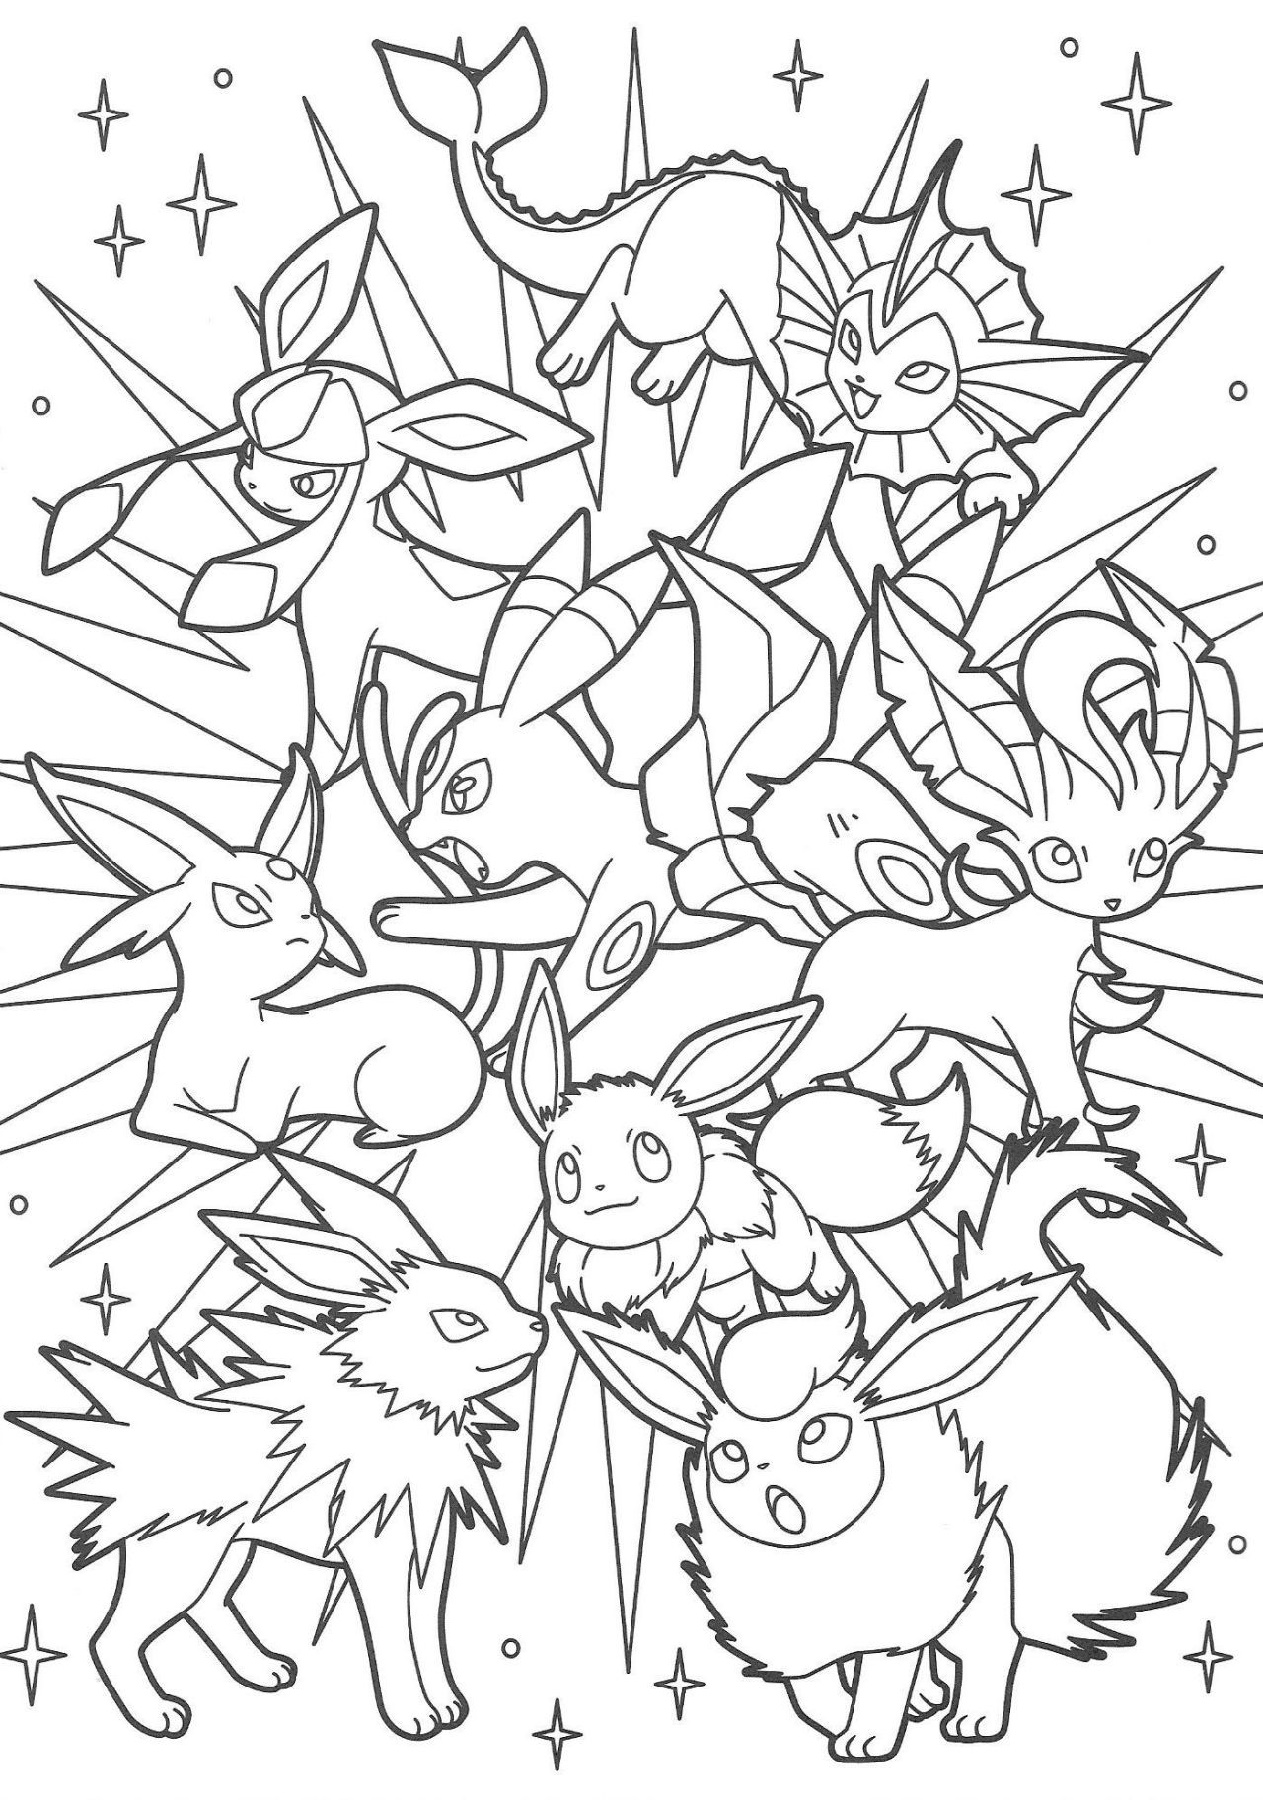 Eeveelutions Coloring Pages For Kids